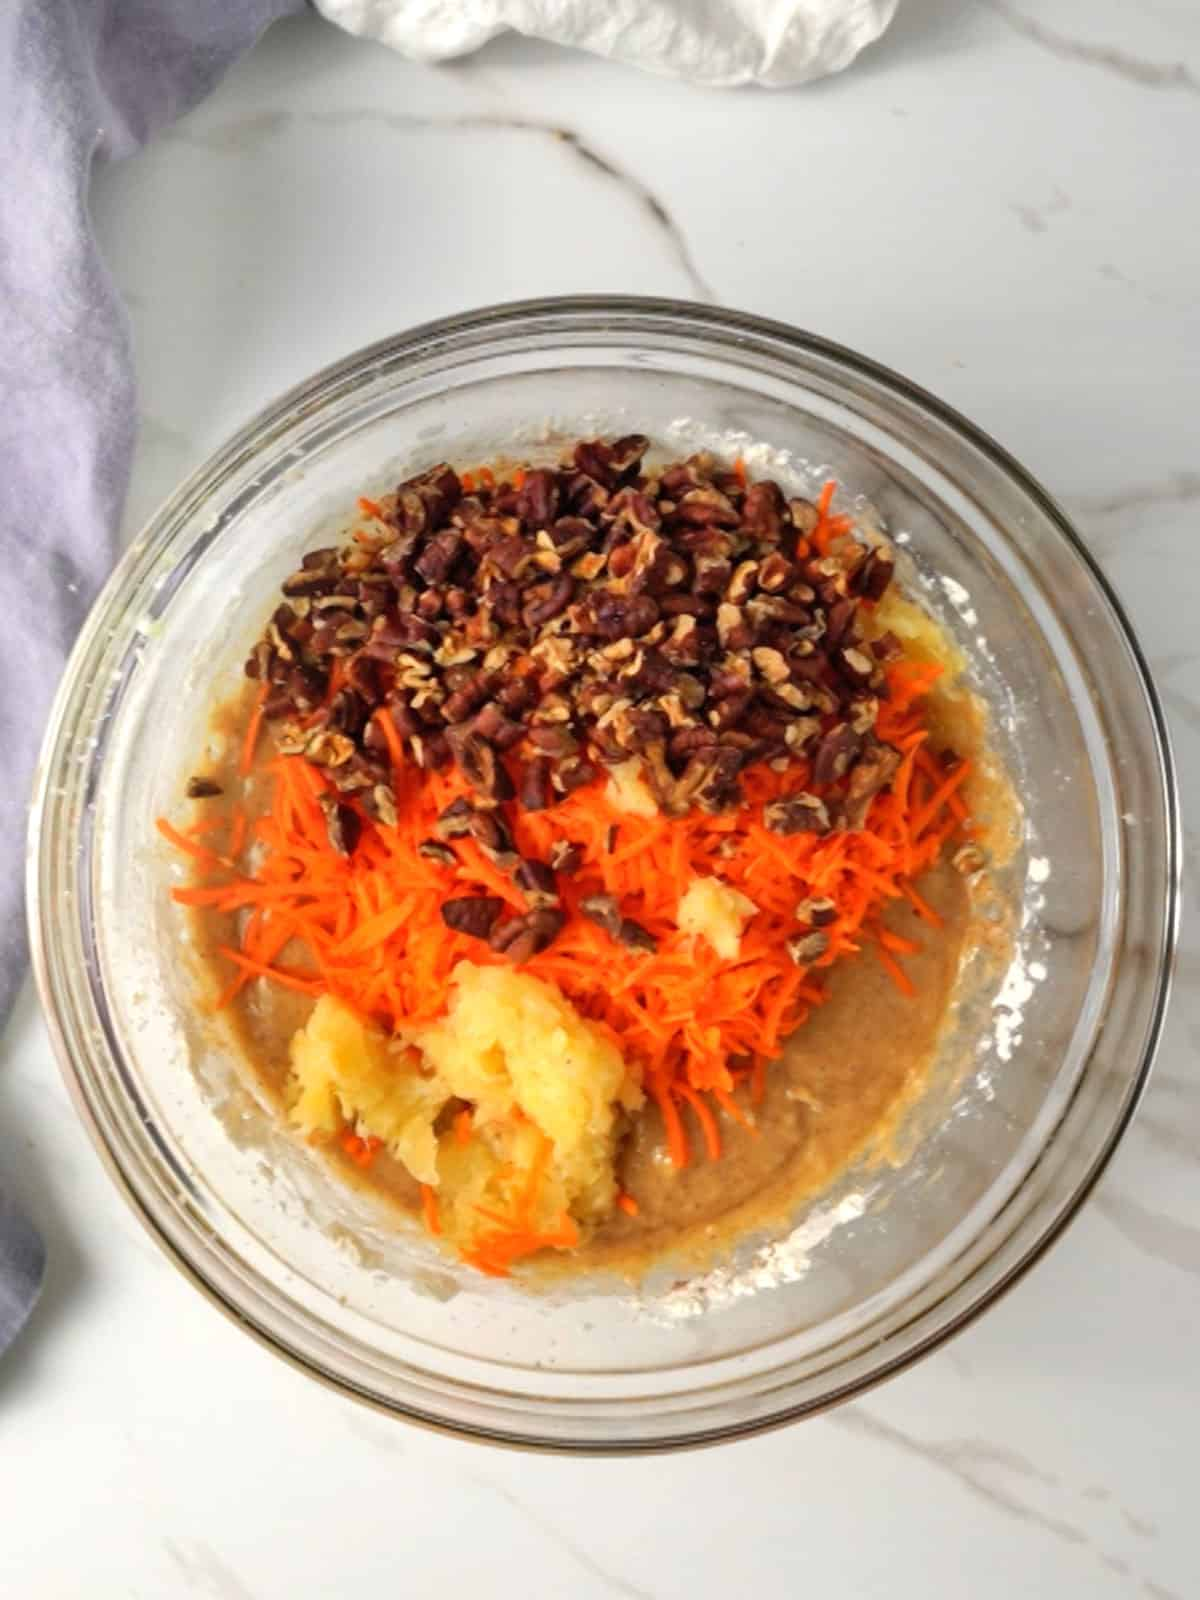 Adding carrots, pineapple and pecans to batter.